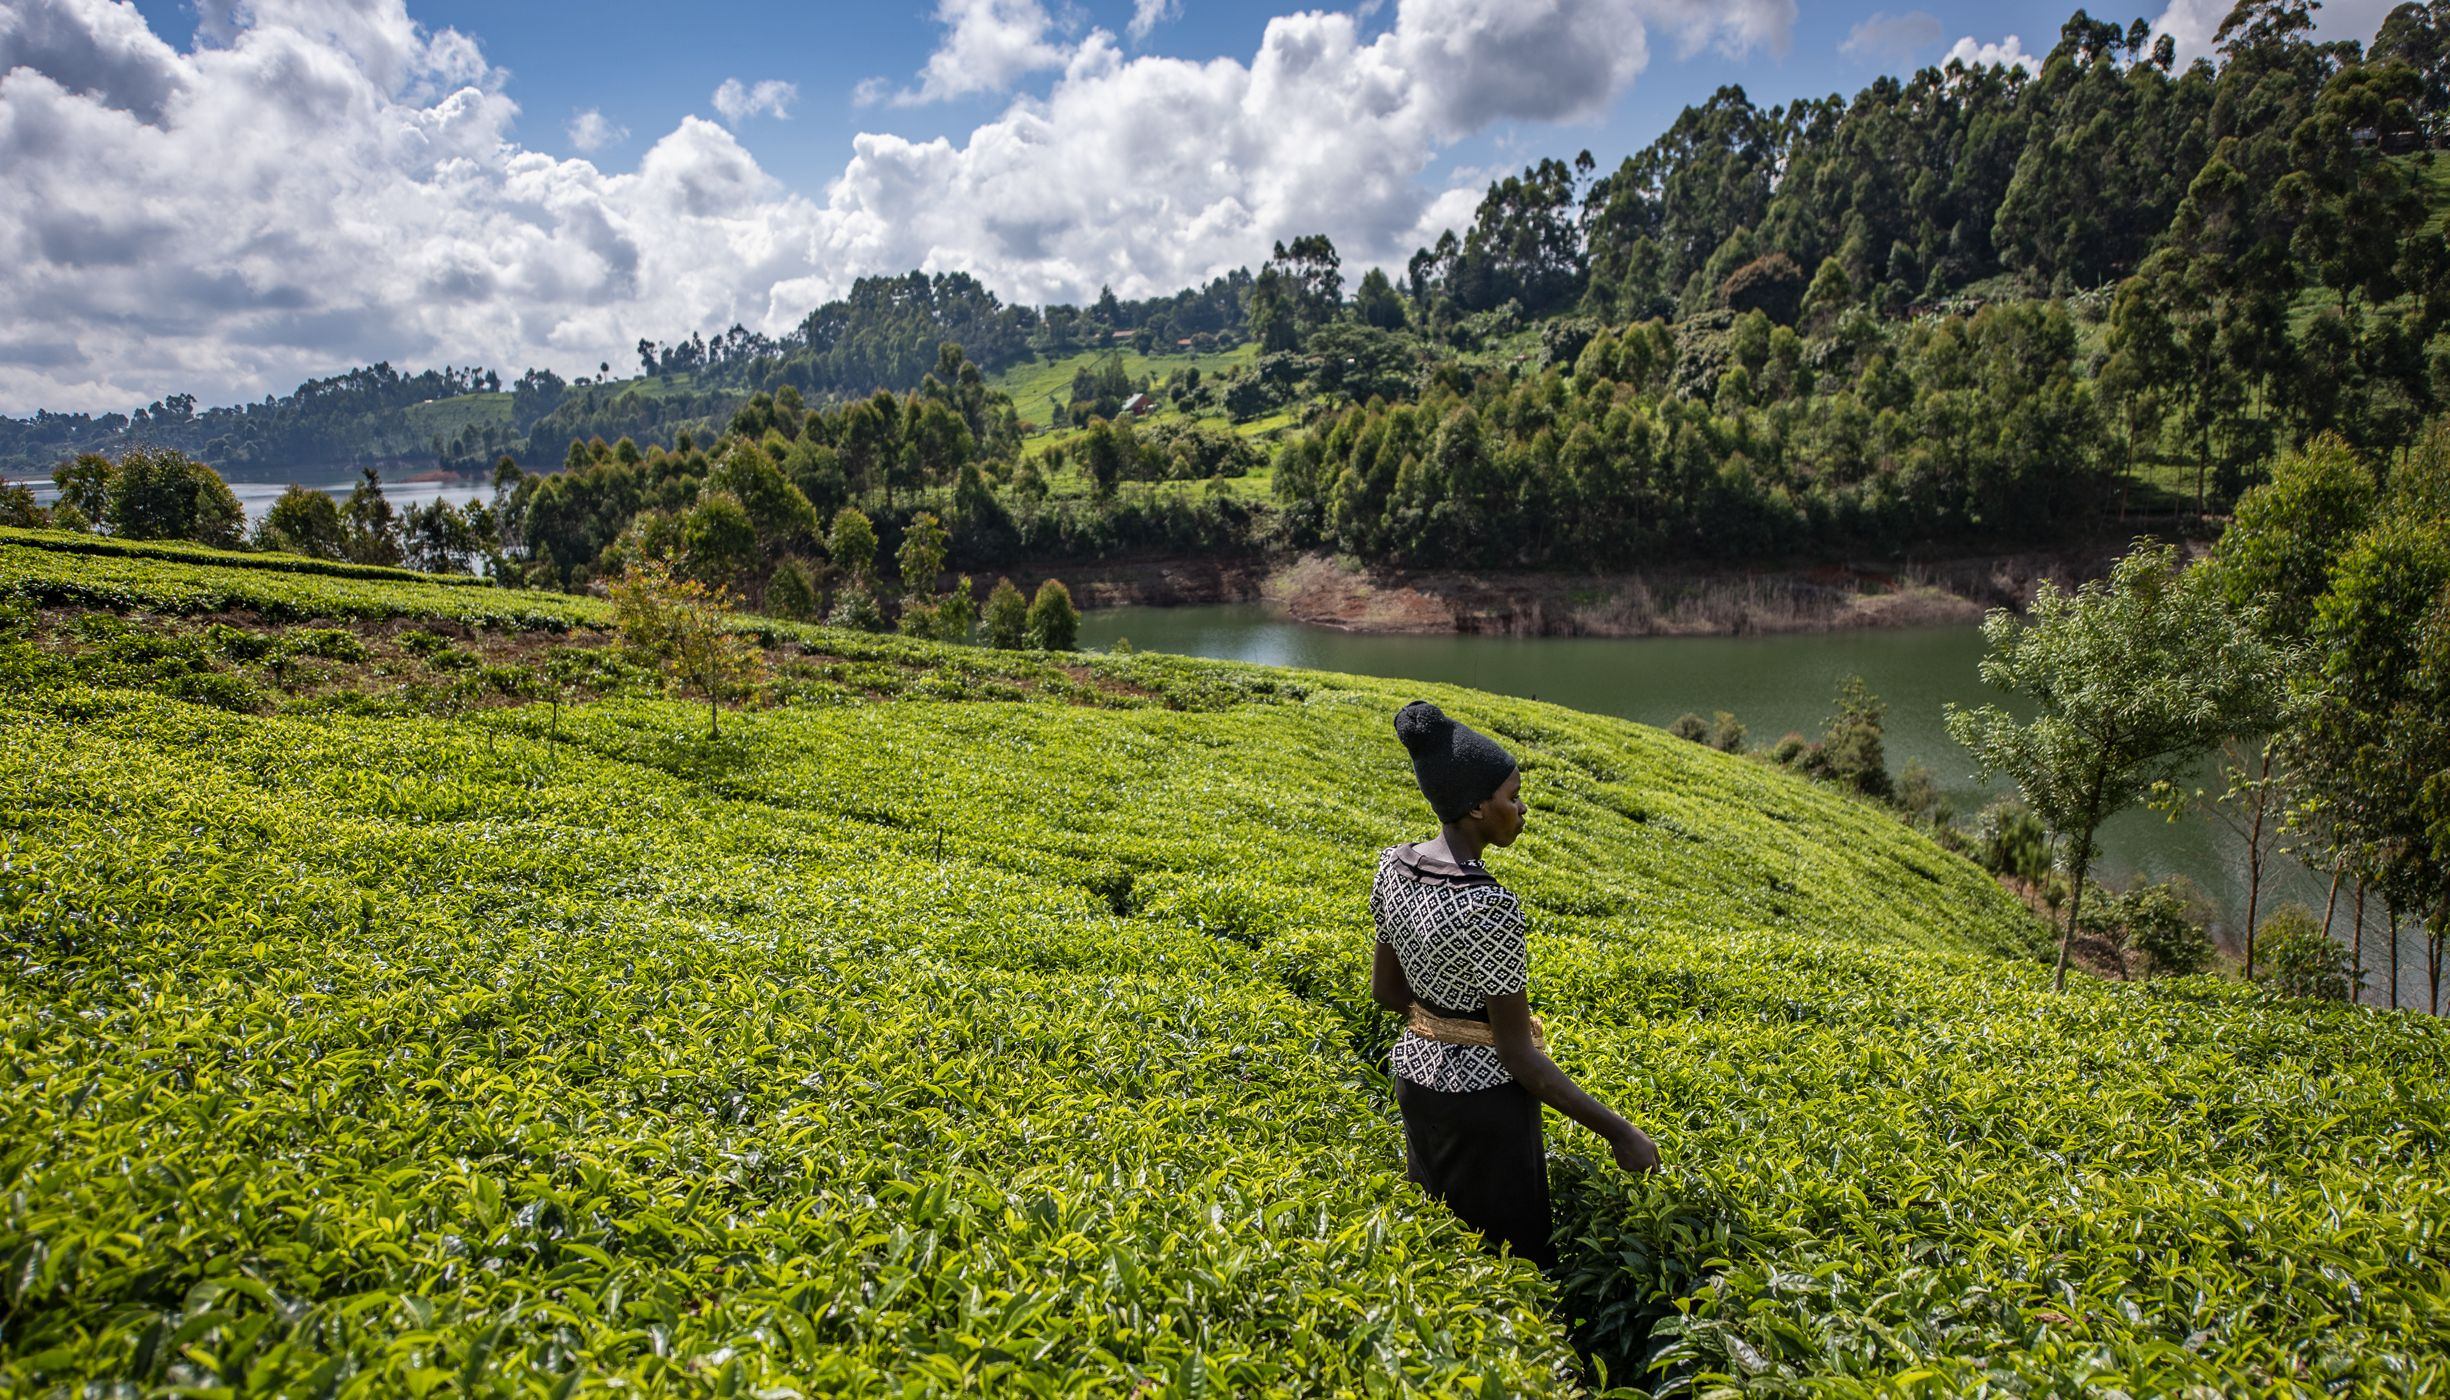 A woman stands amid a lush tea farm near a reservoir.